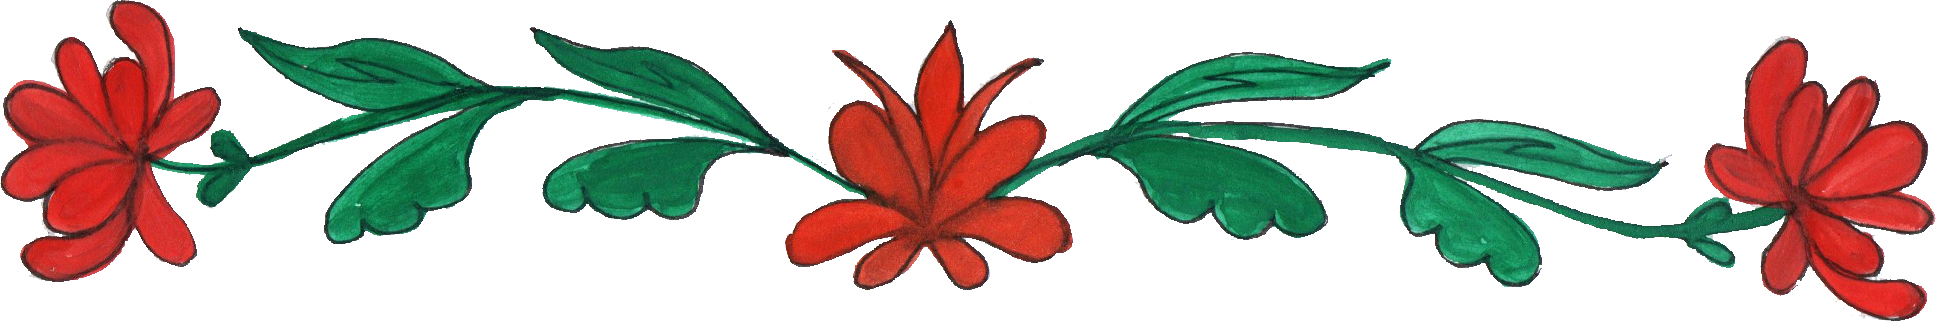 1936x321 8 Flower Border Drawing (Png Transparent)